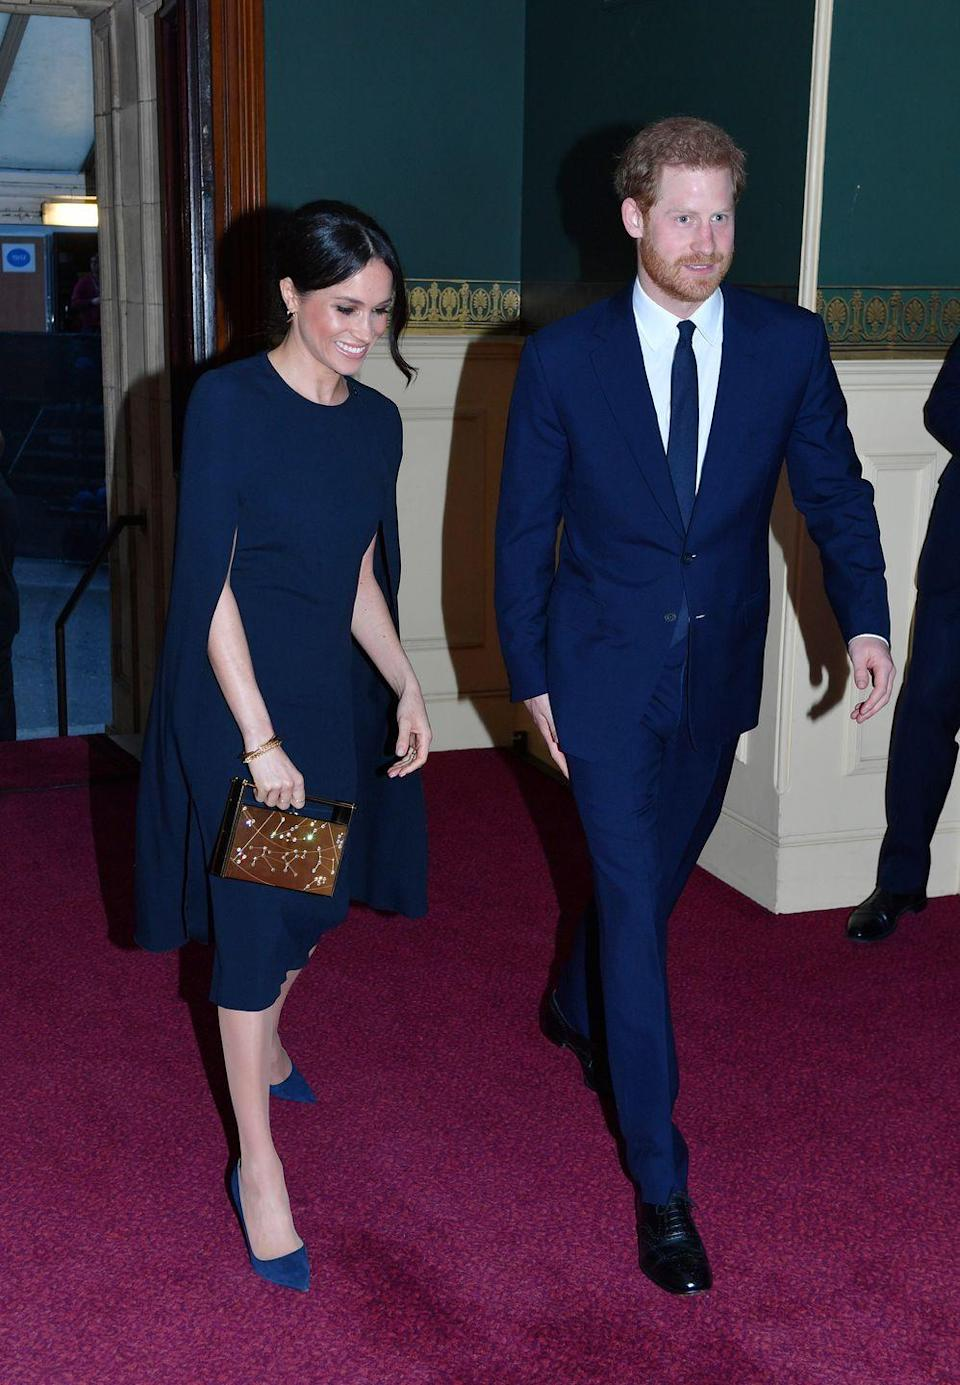 """<p>Markle's sophisticated evening look combined fashion with formality. She paired her navy Stella by Stella McCartney cape dress (longer version available <a class=""""link rapid-noclick-resp"""" href=""""https://www.farfetch.com/uk/shopping/women/stella-mccartney-long-cape-dress-item-12732342.aspx?storeid=9984&size=19&pid=googleadwords_int&af_channel=Search&c=629762120&af_c_id=629762120&af_keywords=aud-169879449902%3Apla-381862307486&af_adset_id=51529112772&af_ad_id=217936171101&is_retargeting=true&gclid=EAIaIQobChMIh7Pqz4fQ2gIVr7vtCh3sbgEsEAQYASABEgI_R_D_BwE"""" rel=""""nofollow noopener"""" target=""""_blank"""" data-ylk=""""slk:here"""">here</a>), with a pair of Manolo Blahnik BB pumps. She carried a chic <a class=""""link rapid-noclick-resp"""" href=""""https://www.modaoperandi.com/naeem-khan-ss17/armory-zodiac-clutch"""" rel=""""nofollow noopener"""" target=""""_blank"""" data-ylk=""""slk:Naeem Khan Armory Zodiac clutch bag"""">Naeem Khan Armory Zodiac clutch bag</a> (sold out but similar zodiac-inspired pieces <a class=""""link rapid-noclick-resp"""" href=""""https://www.elle.com/uk/fashion/what-to-wear/articles/g31277/zodiac-star-sign-horoscope-gifts-jewellery-clothes-accessories/"""" rel=""""nofollow noopener"""" target=""""_blank"""" data-ylk=""""slk:here"""">here</a>) to complete the outfit.</p>"""